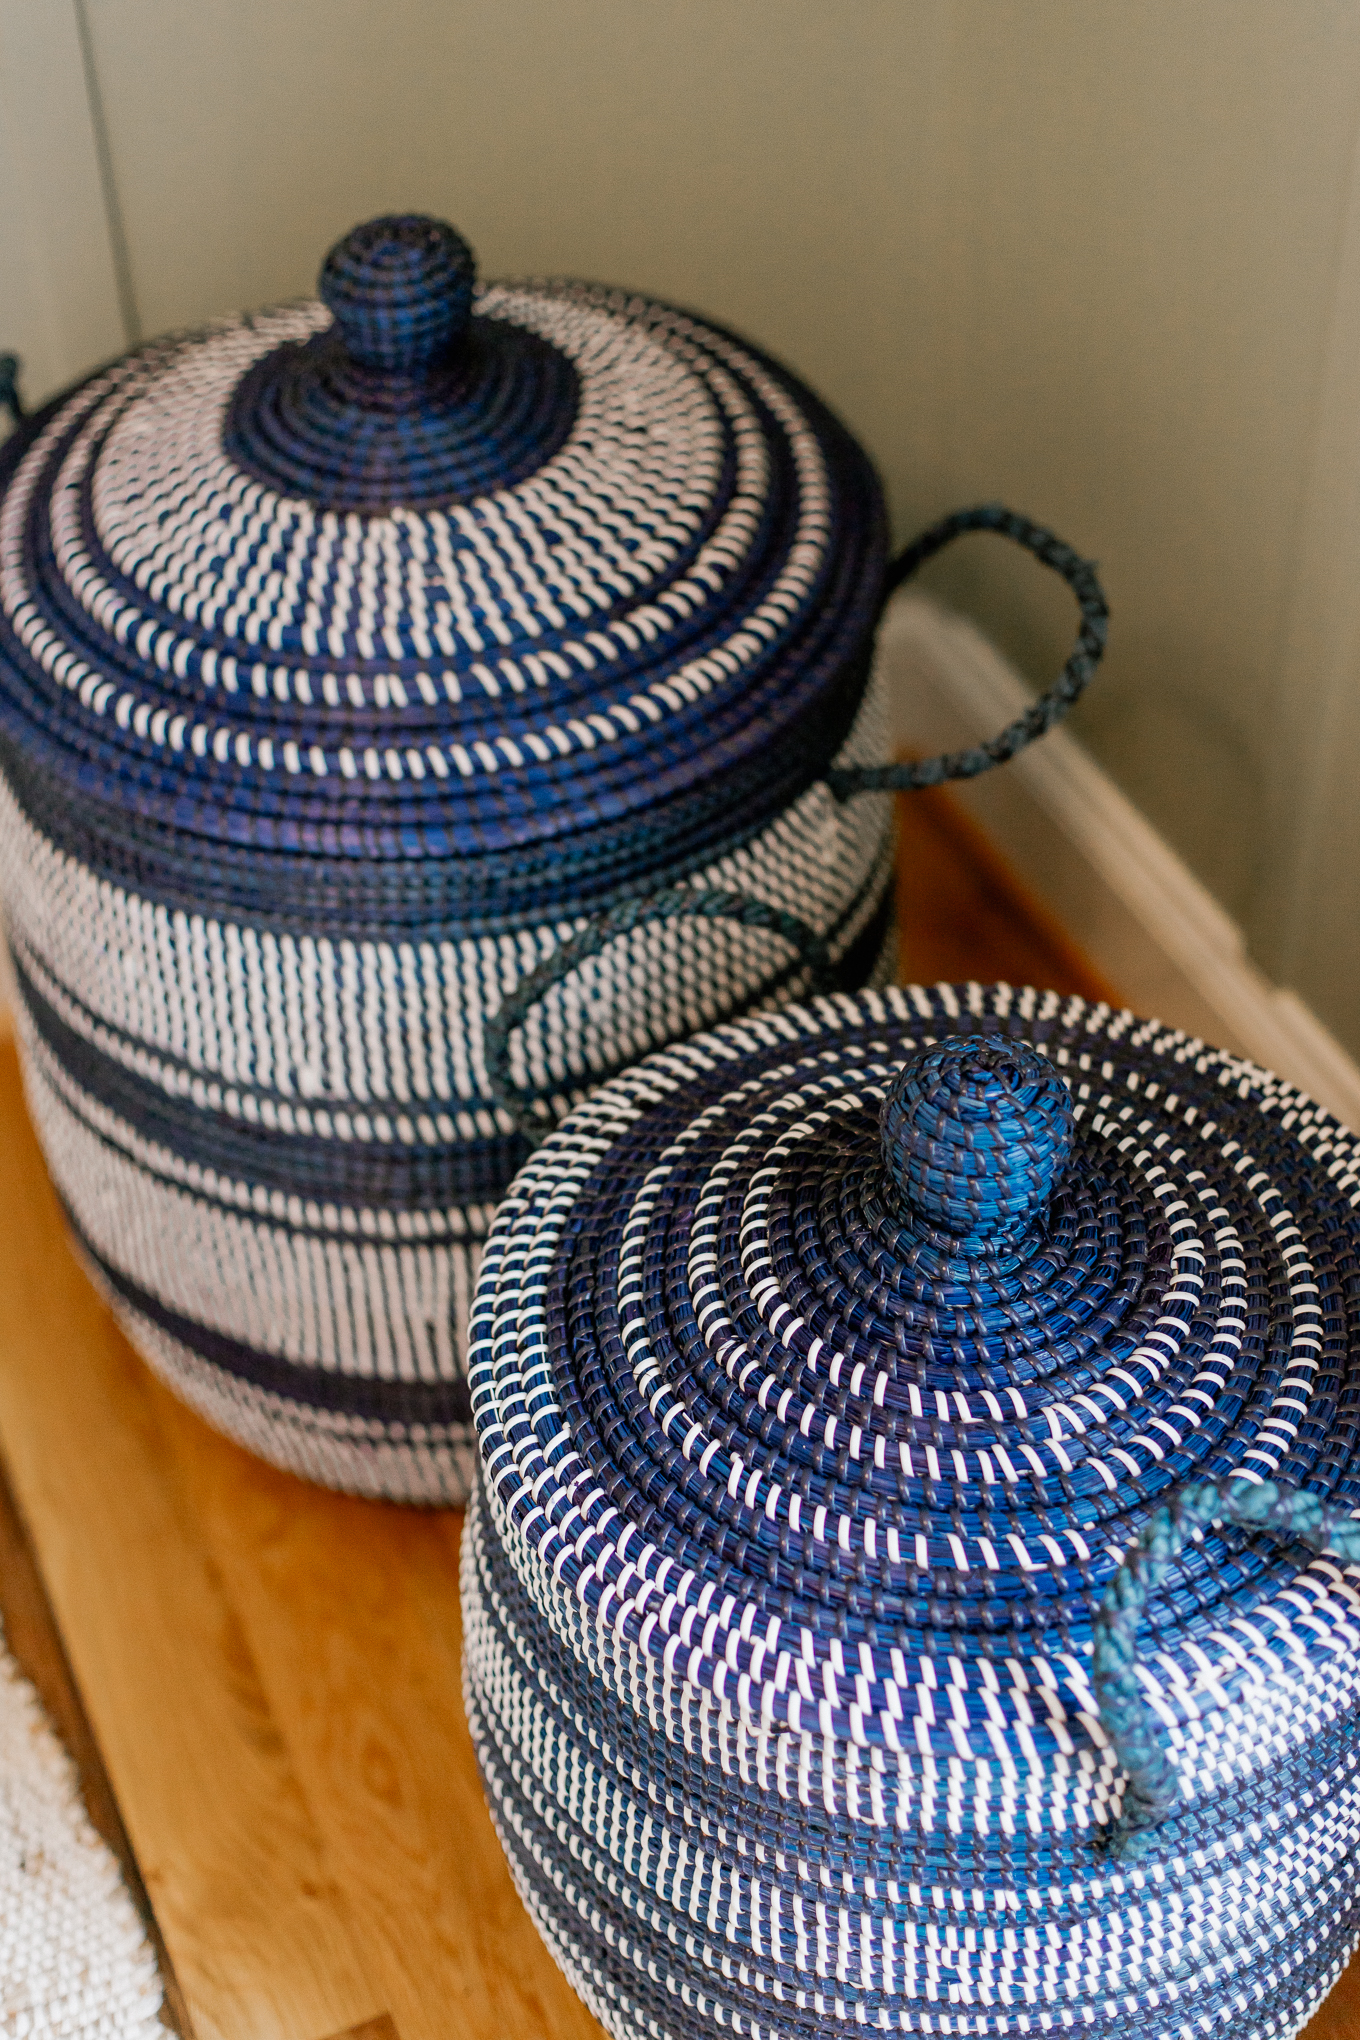 Navy and White Woven Baskets, Baskets for Storage | Louella Reese